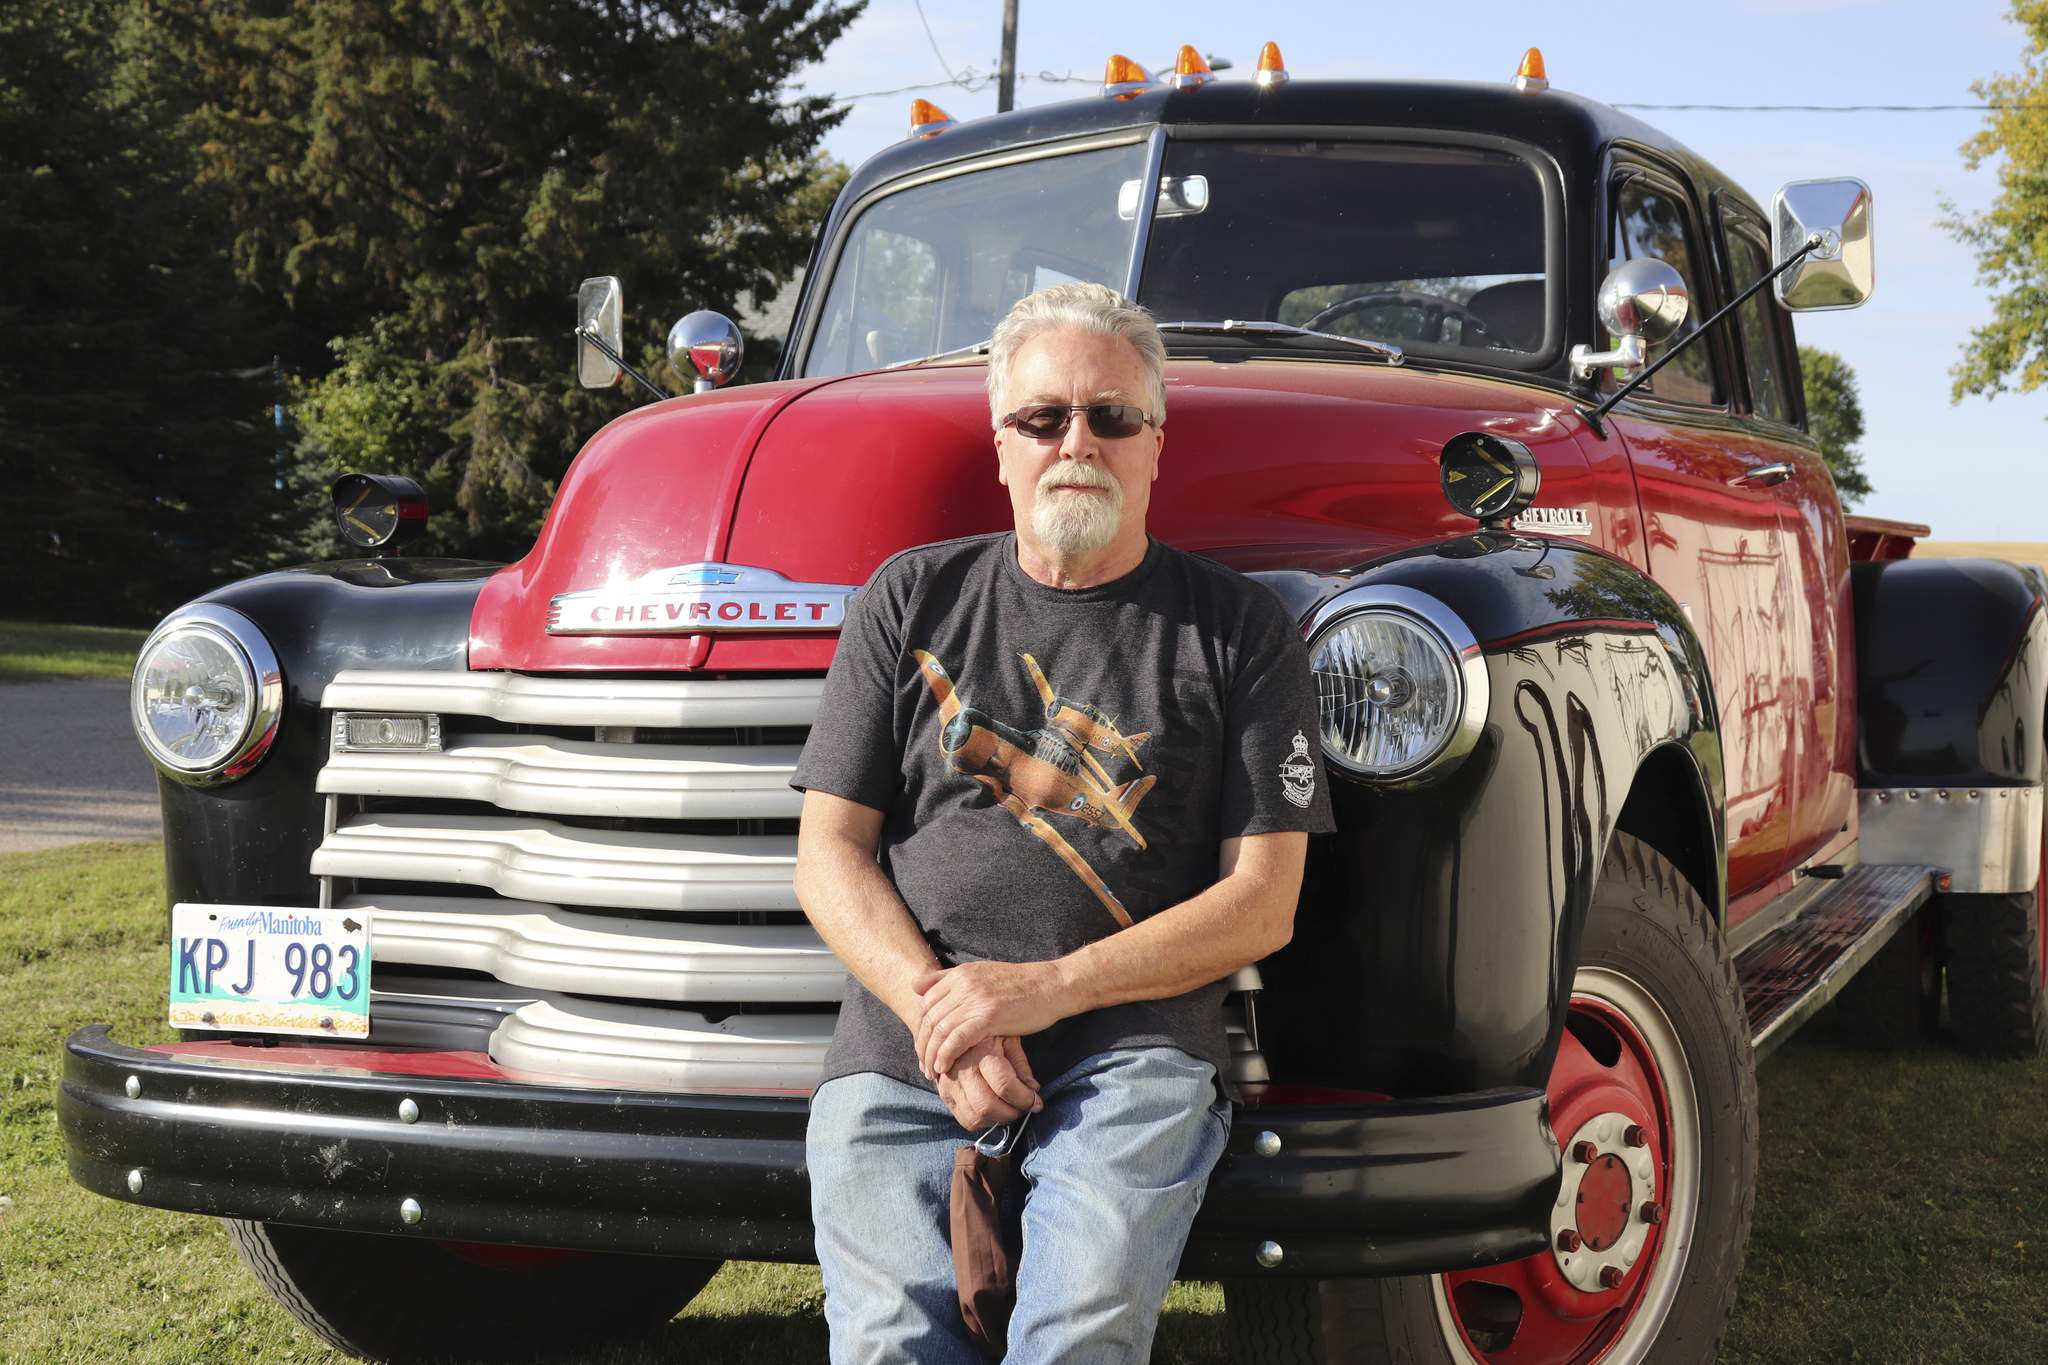 Commonwealth Air Training Plan Museum president John McNarry sits on the bumper of his custom 1953 Chevrolet truck this past Saturday in Alexander. Before McNarry's restoration, this vehicle was used to fight fires in McCreary. (Kyle Darbyson/The Brandon Sun)